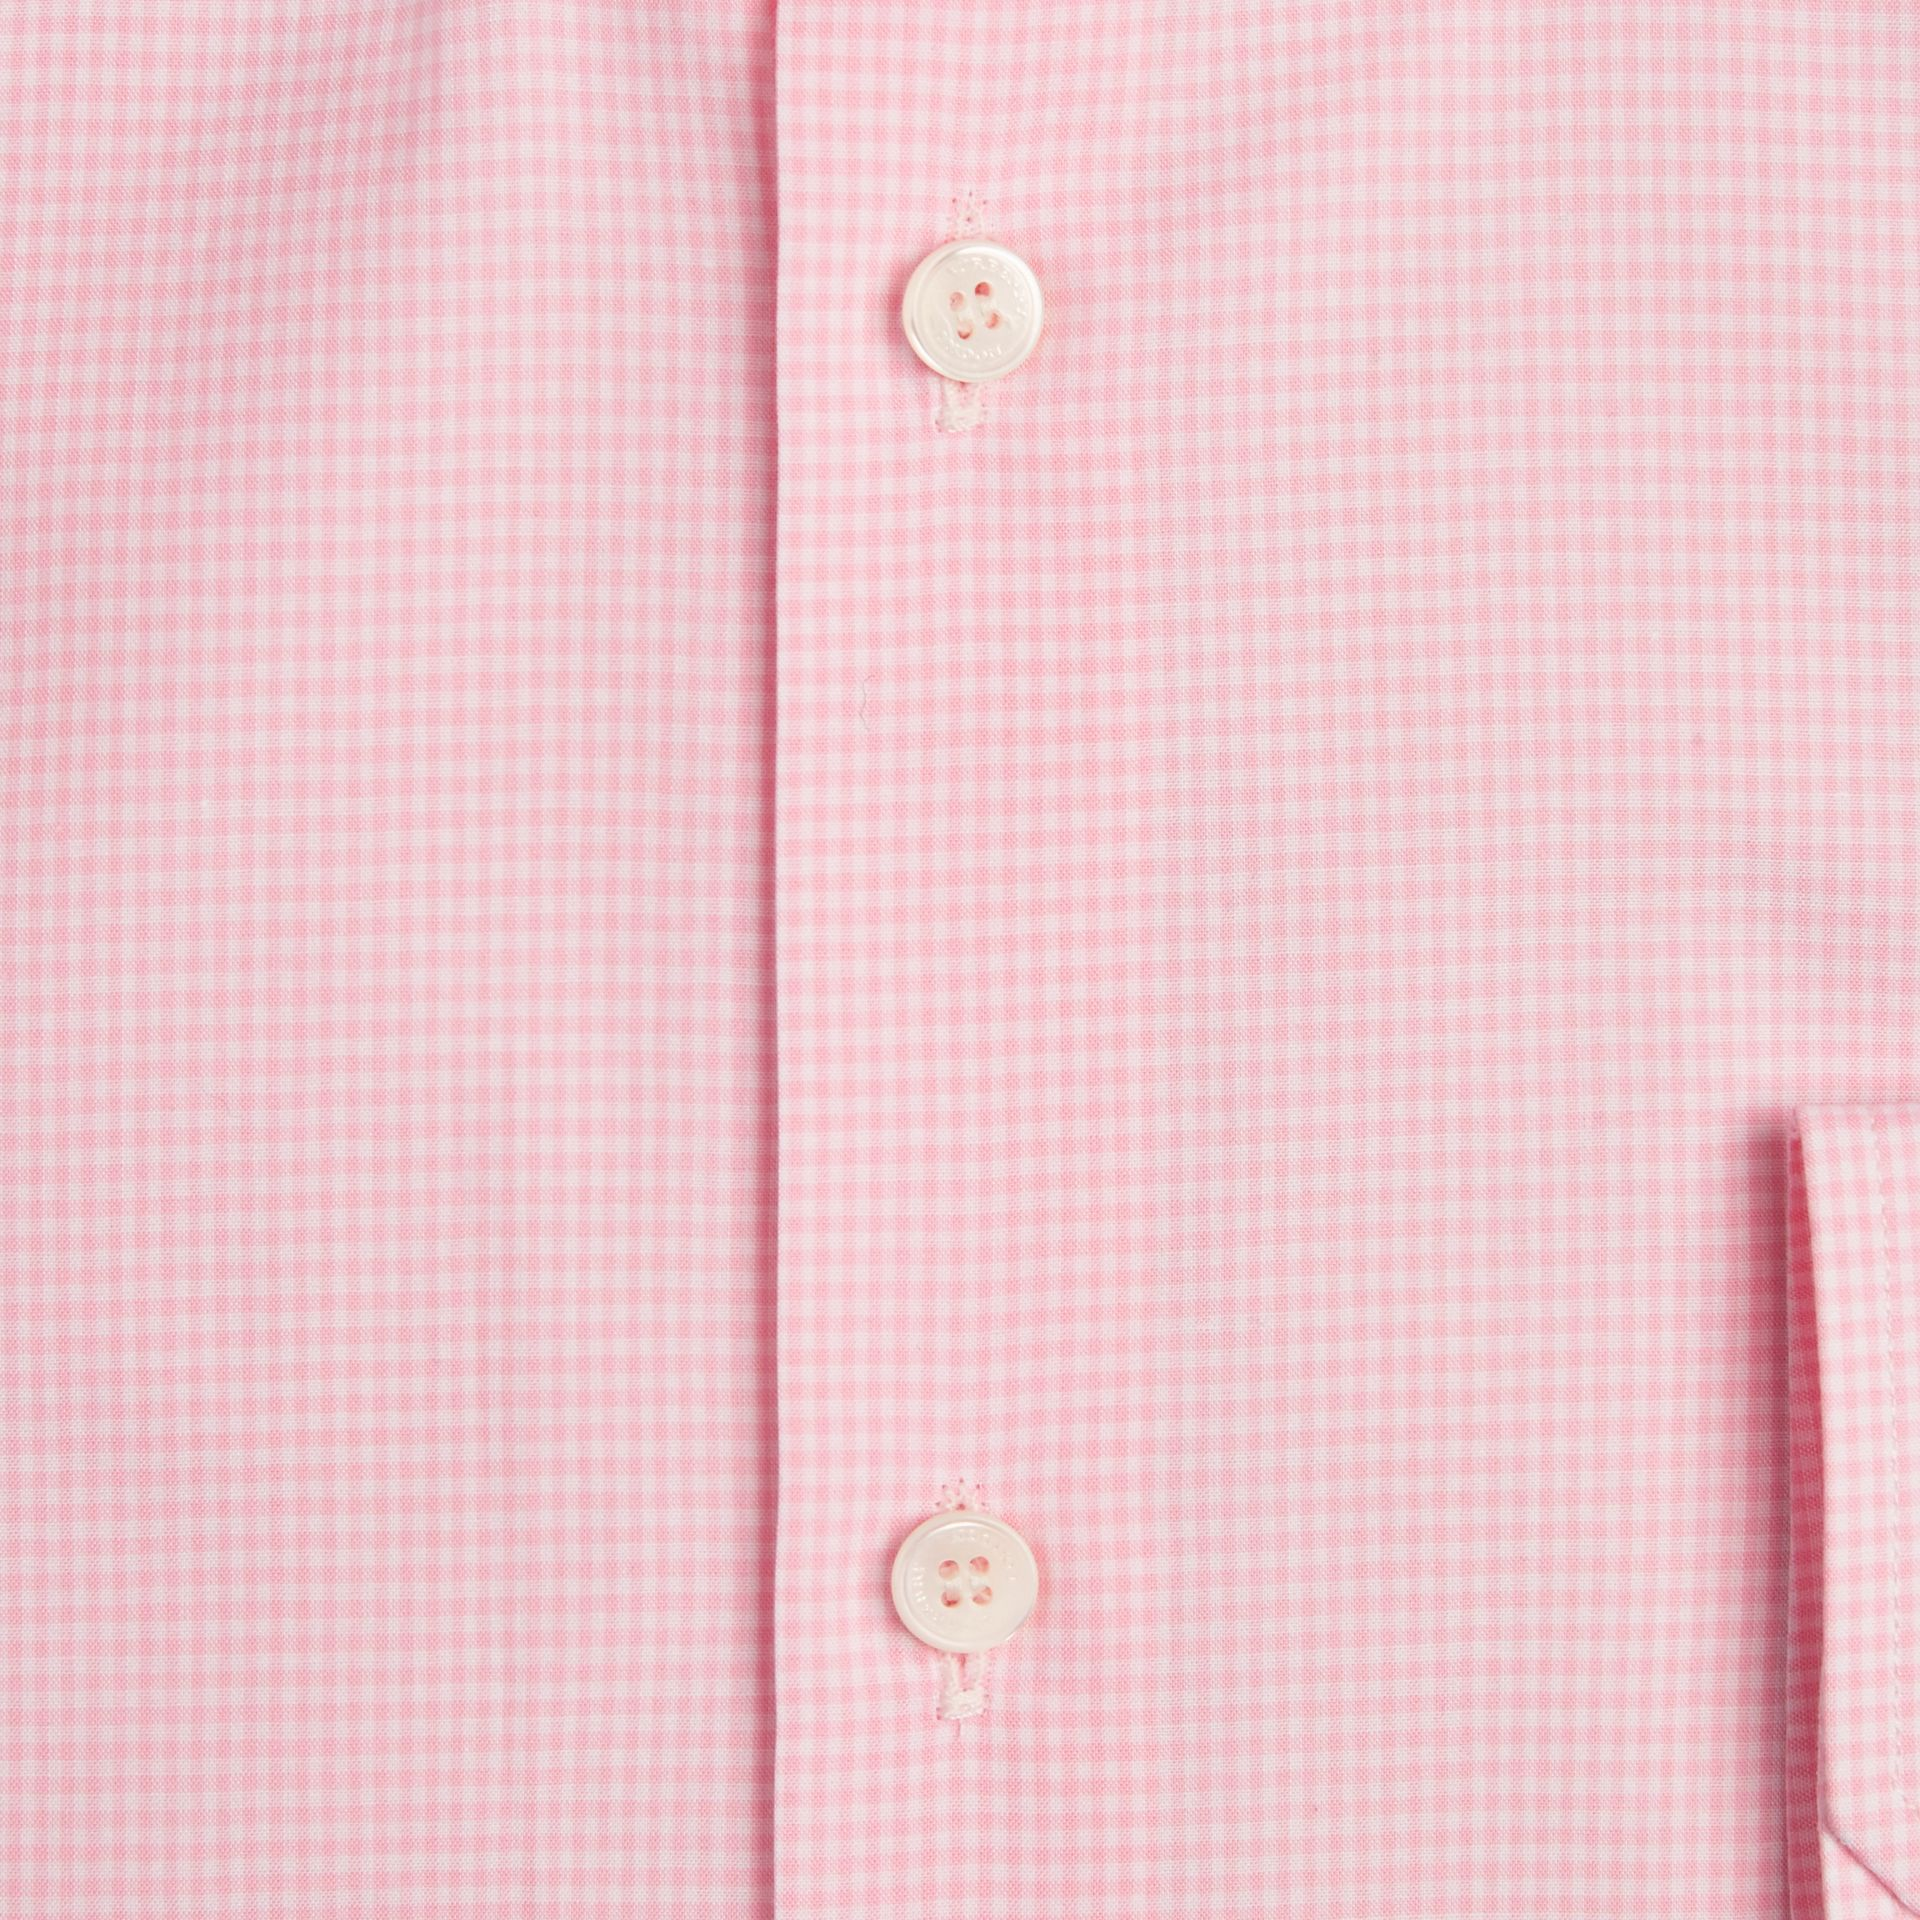 Modern Fit Button-down Collar Gingham Cotton Shirt in City Pink - gallery image 2